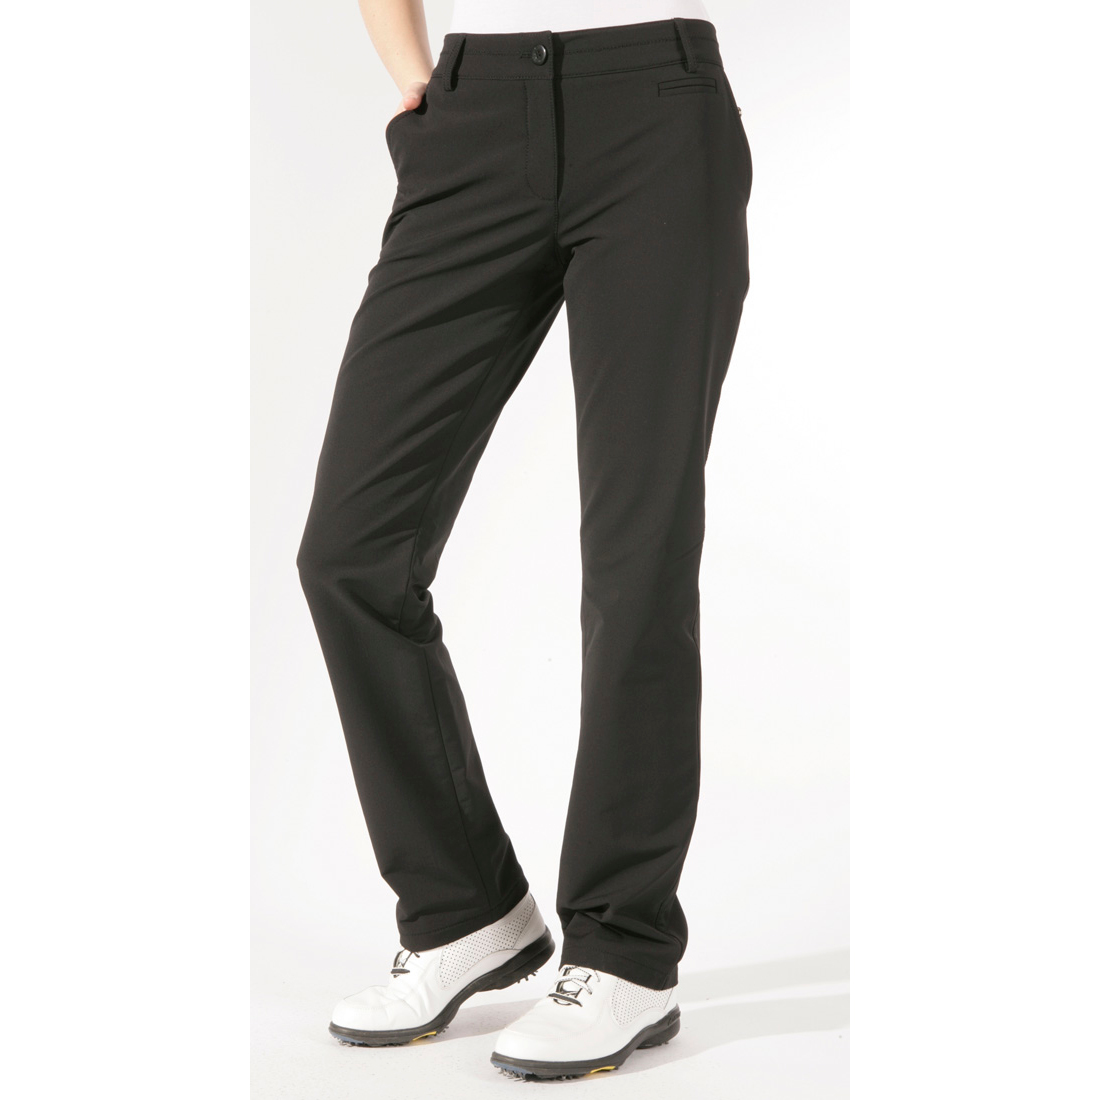 4 Way Stretch Damen Thermohose